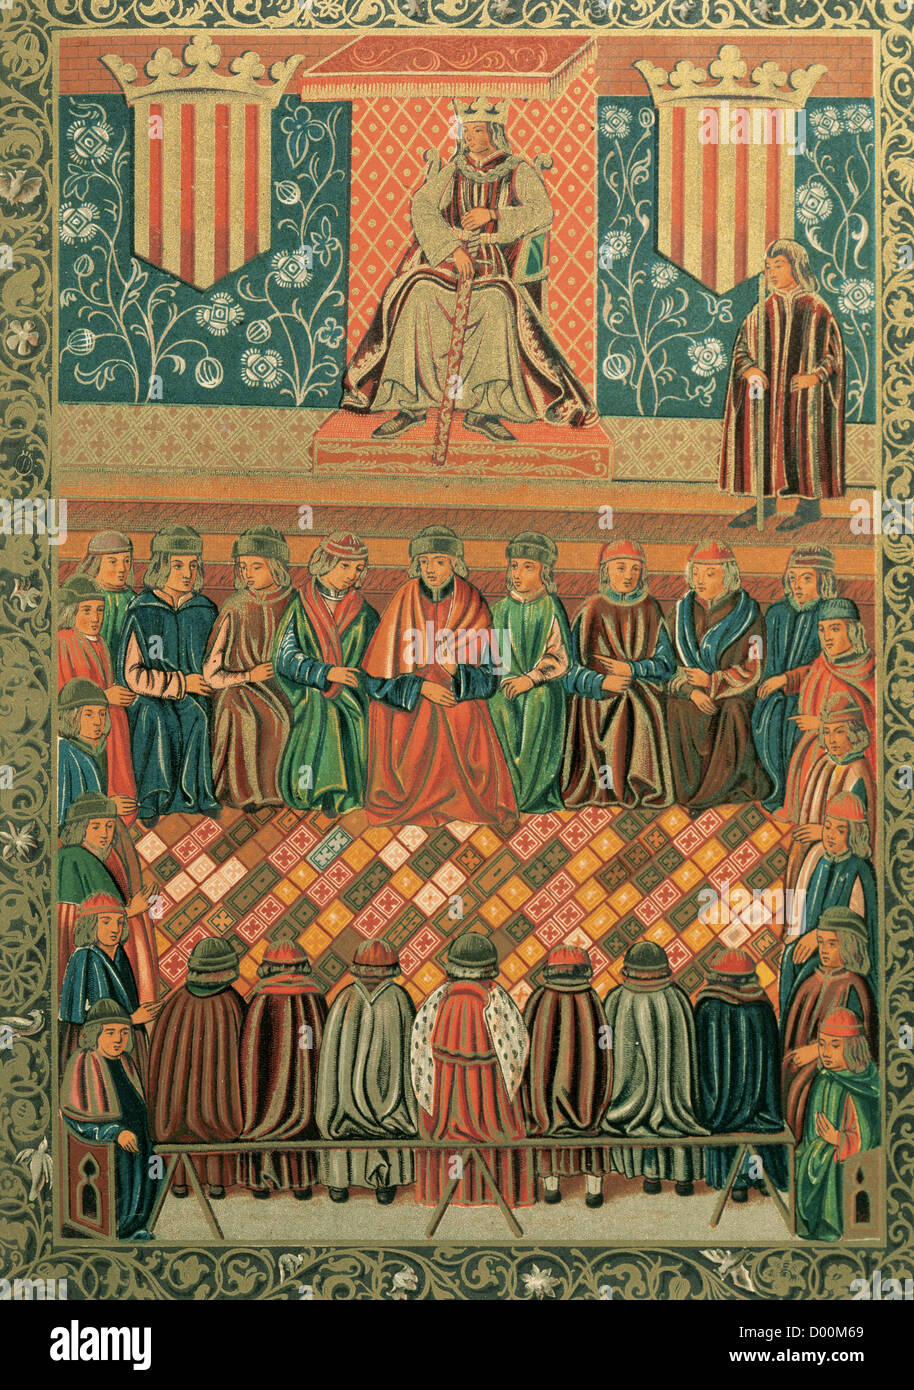 James I the Conqueror (1208-1276) presiding Lleida Courts in March, 1242. Constitutions and other rights of Catalonia. - Stock Image